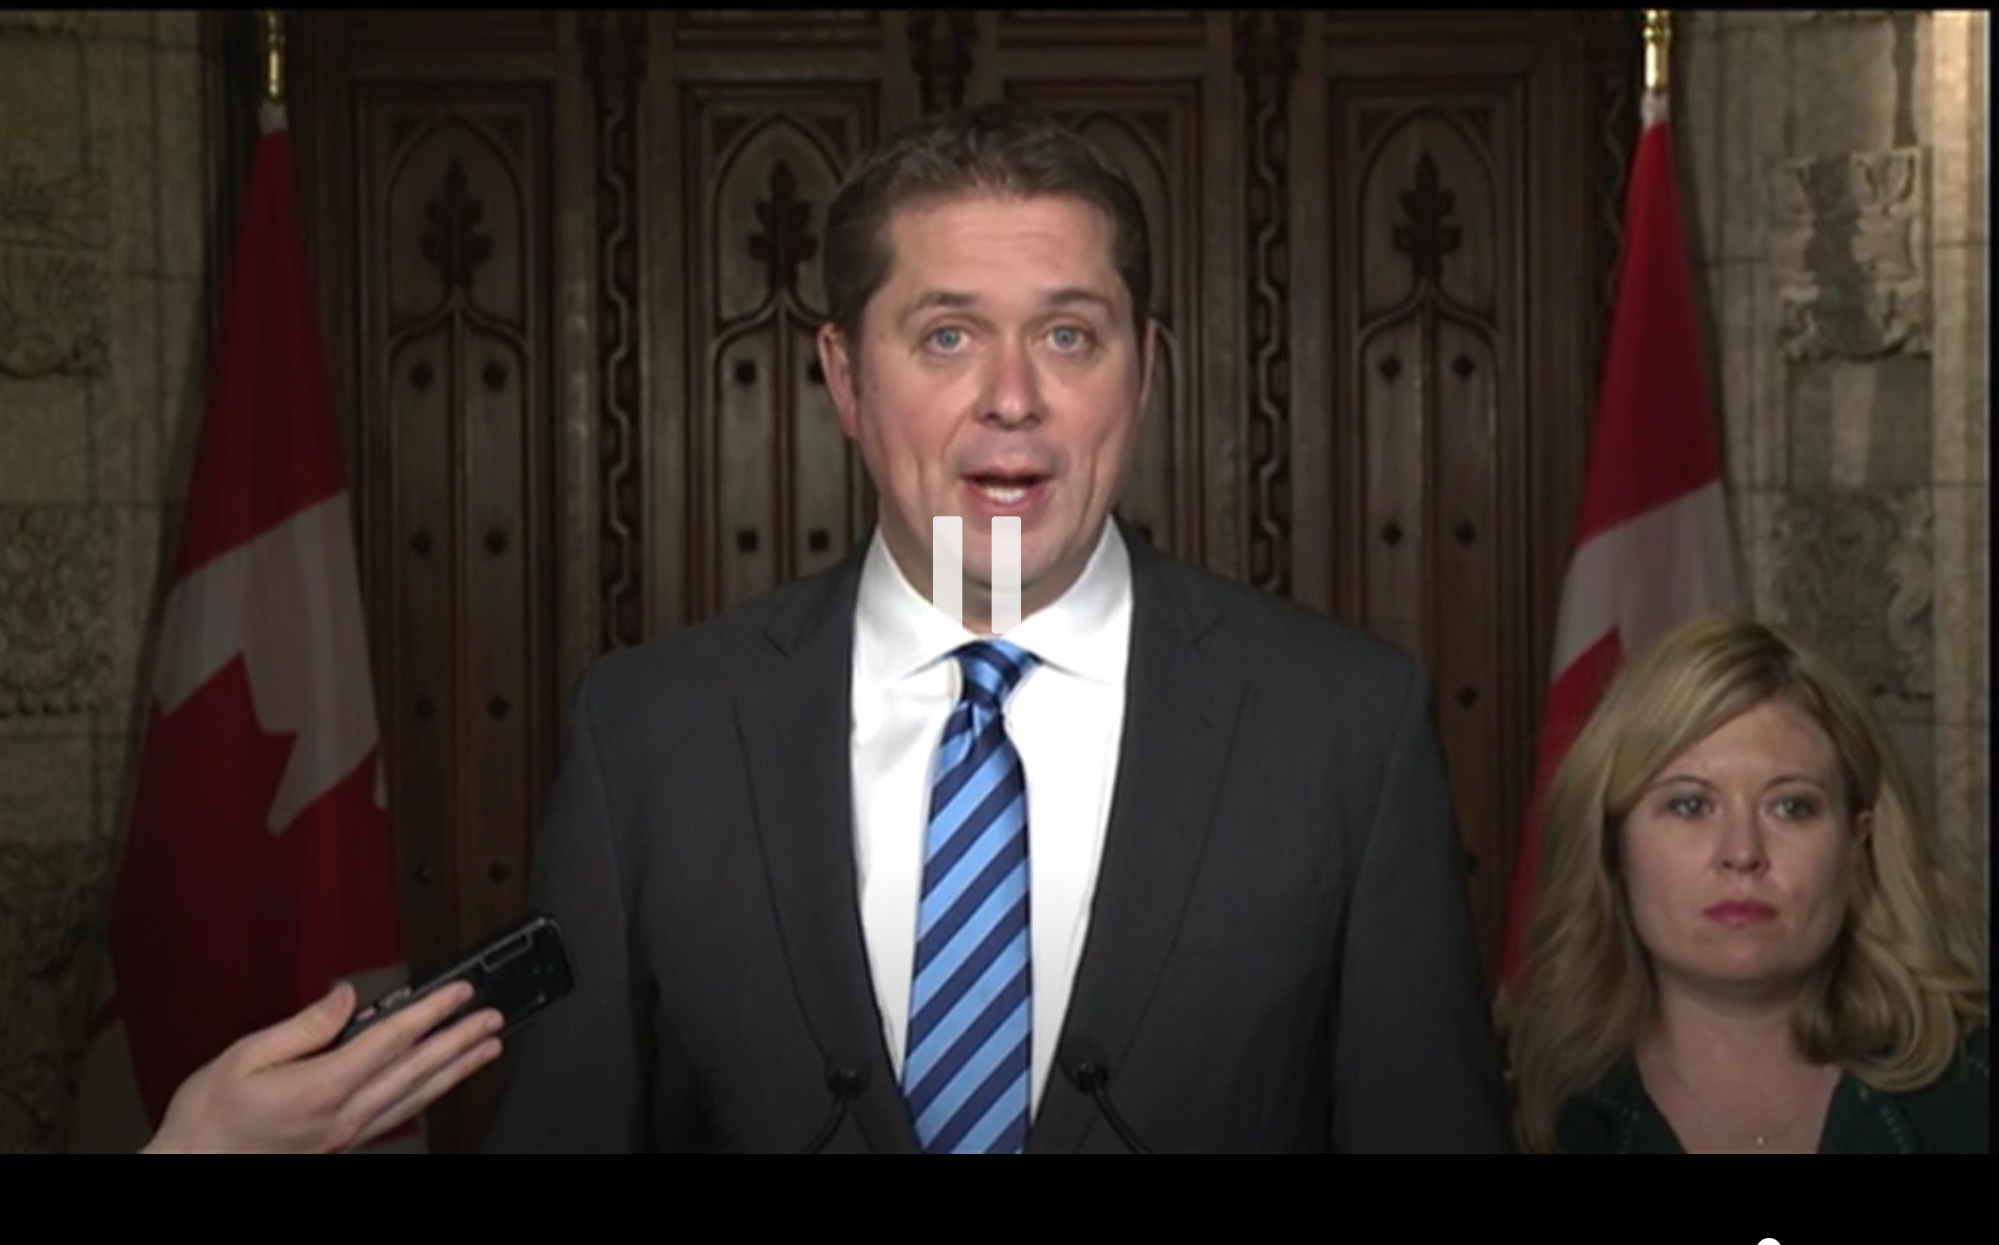 Conservative Party Leader Andrew Scheer holds a news conference in the foyer of the House of Commons, Ottawa, Ont., Dec. 4, 2018. Global News screenshot